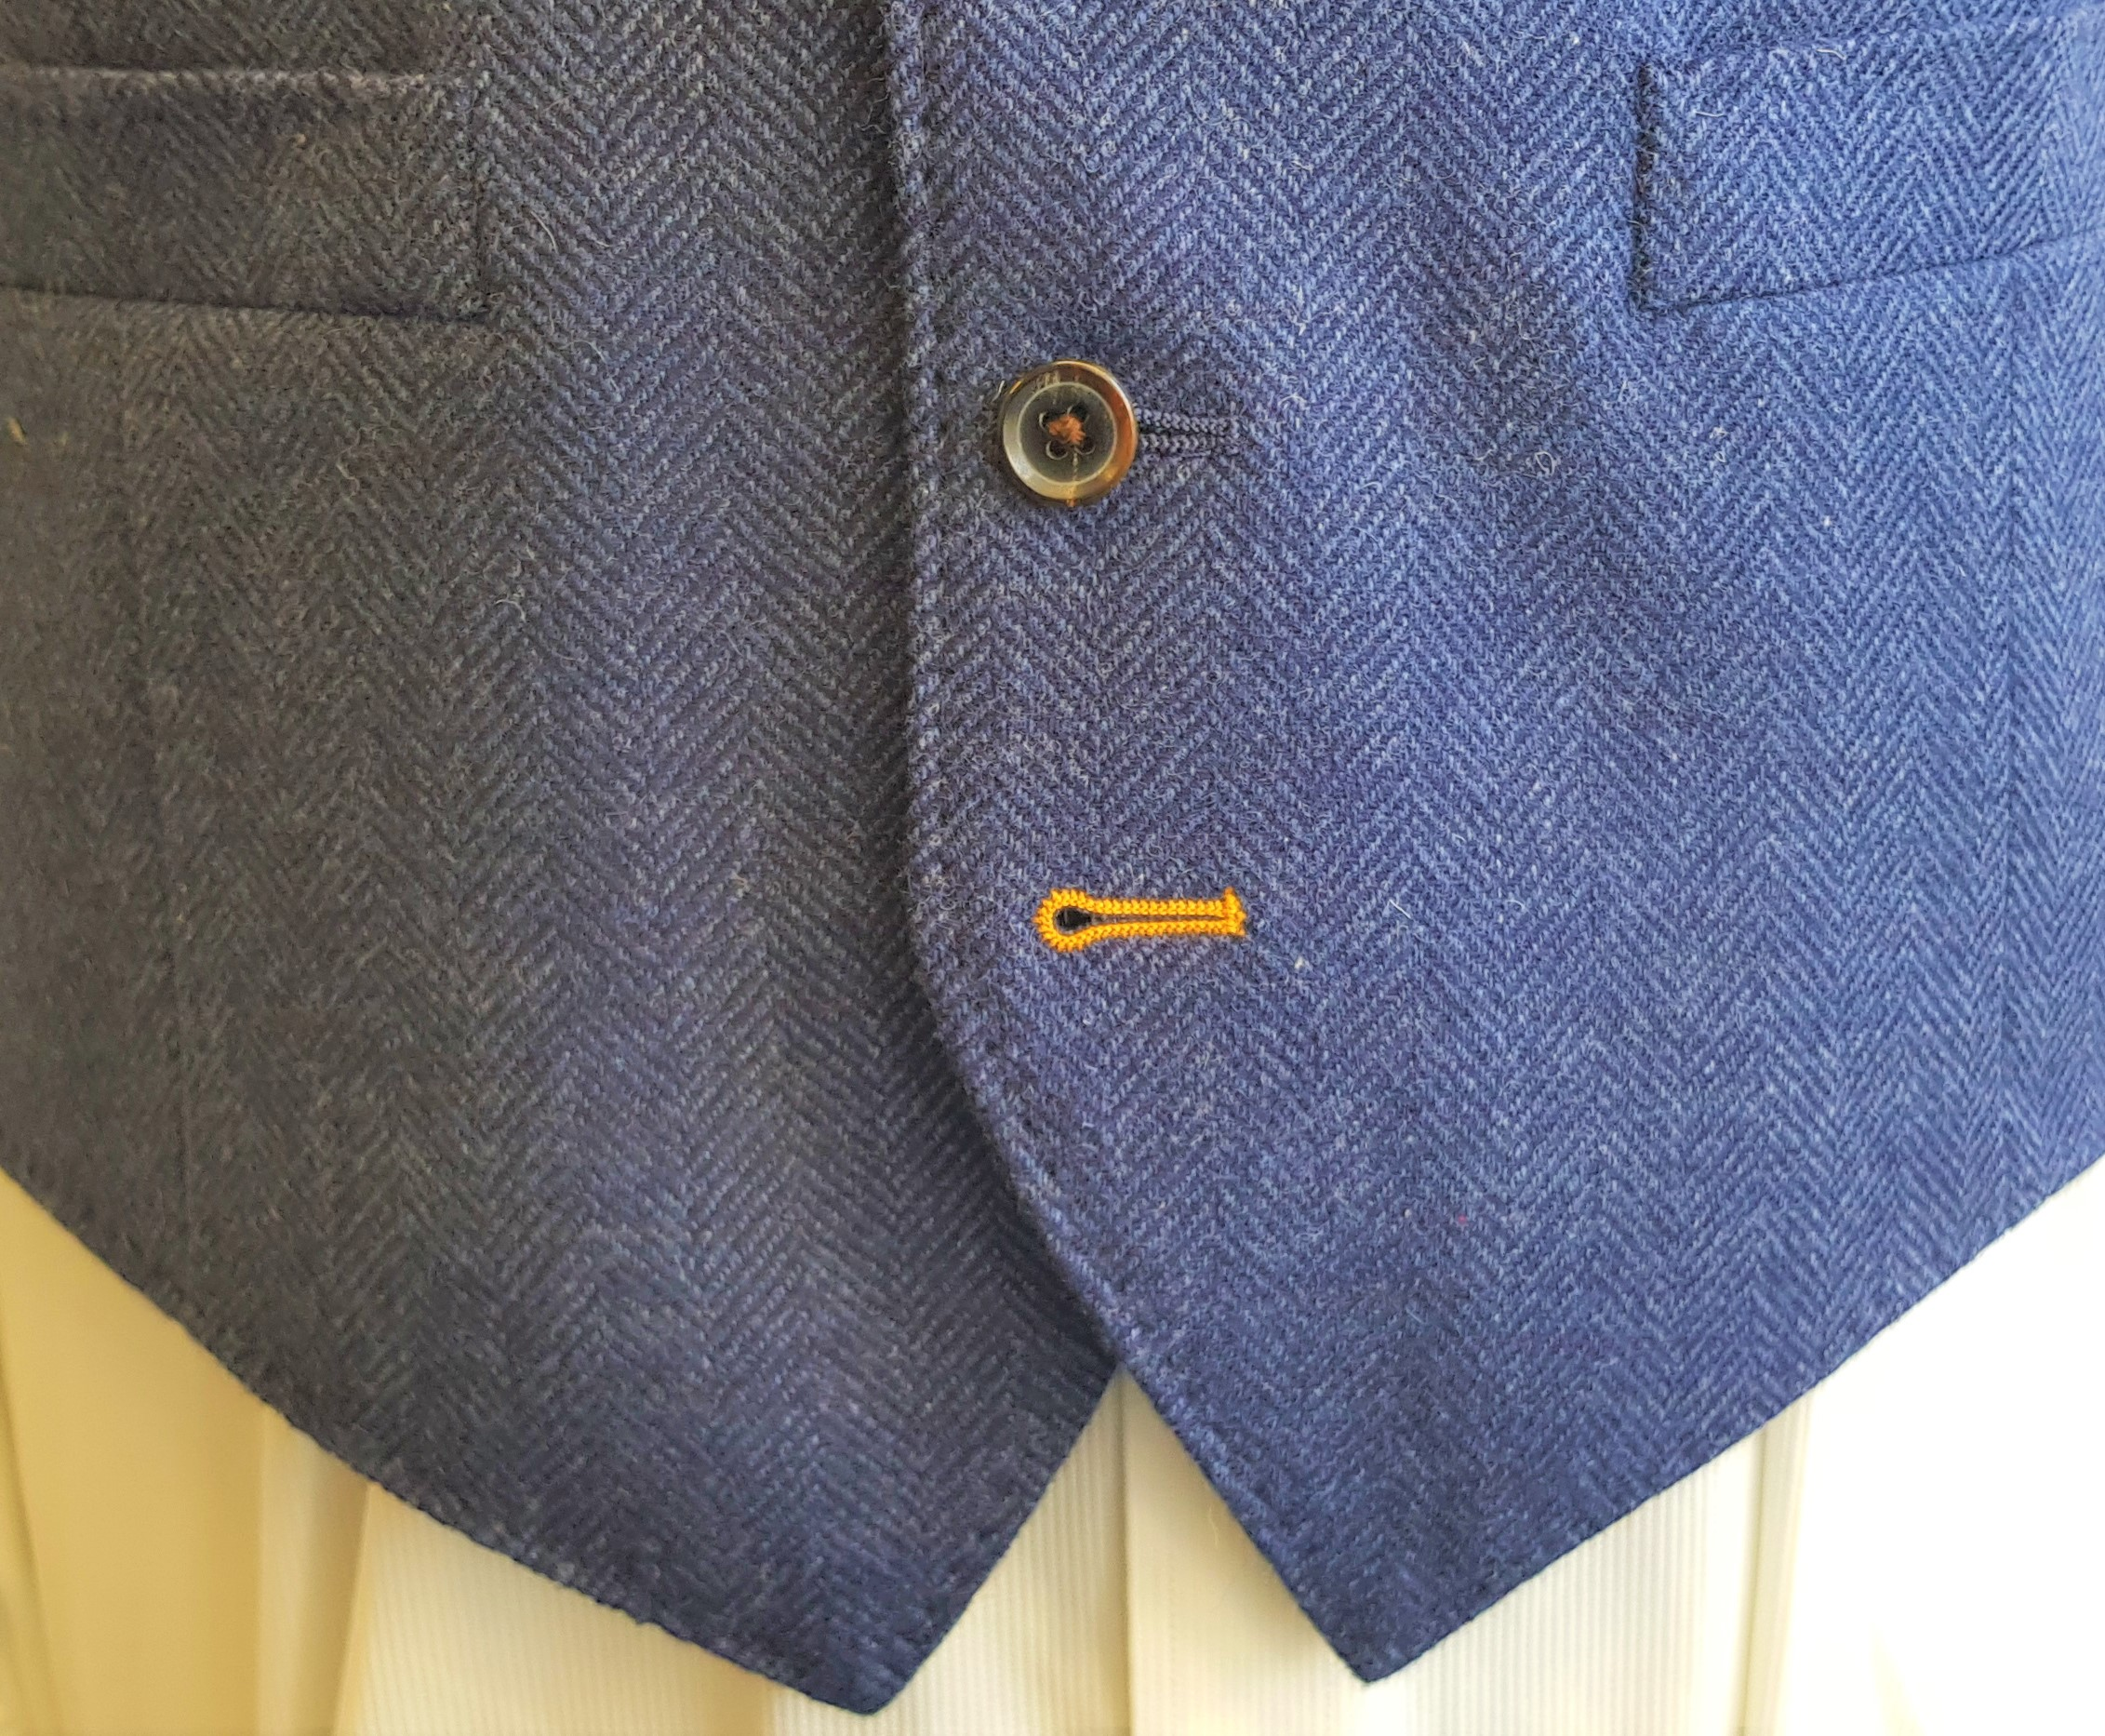 Blue Merino Herringbone 3 Piece Tweed Suit (11).jpg